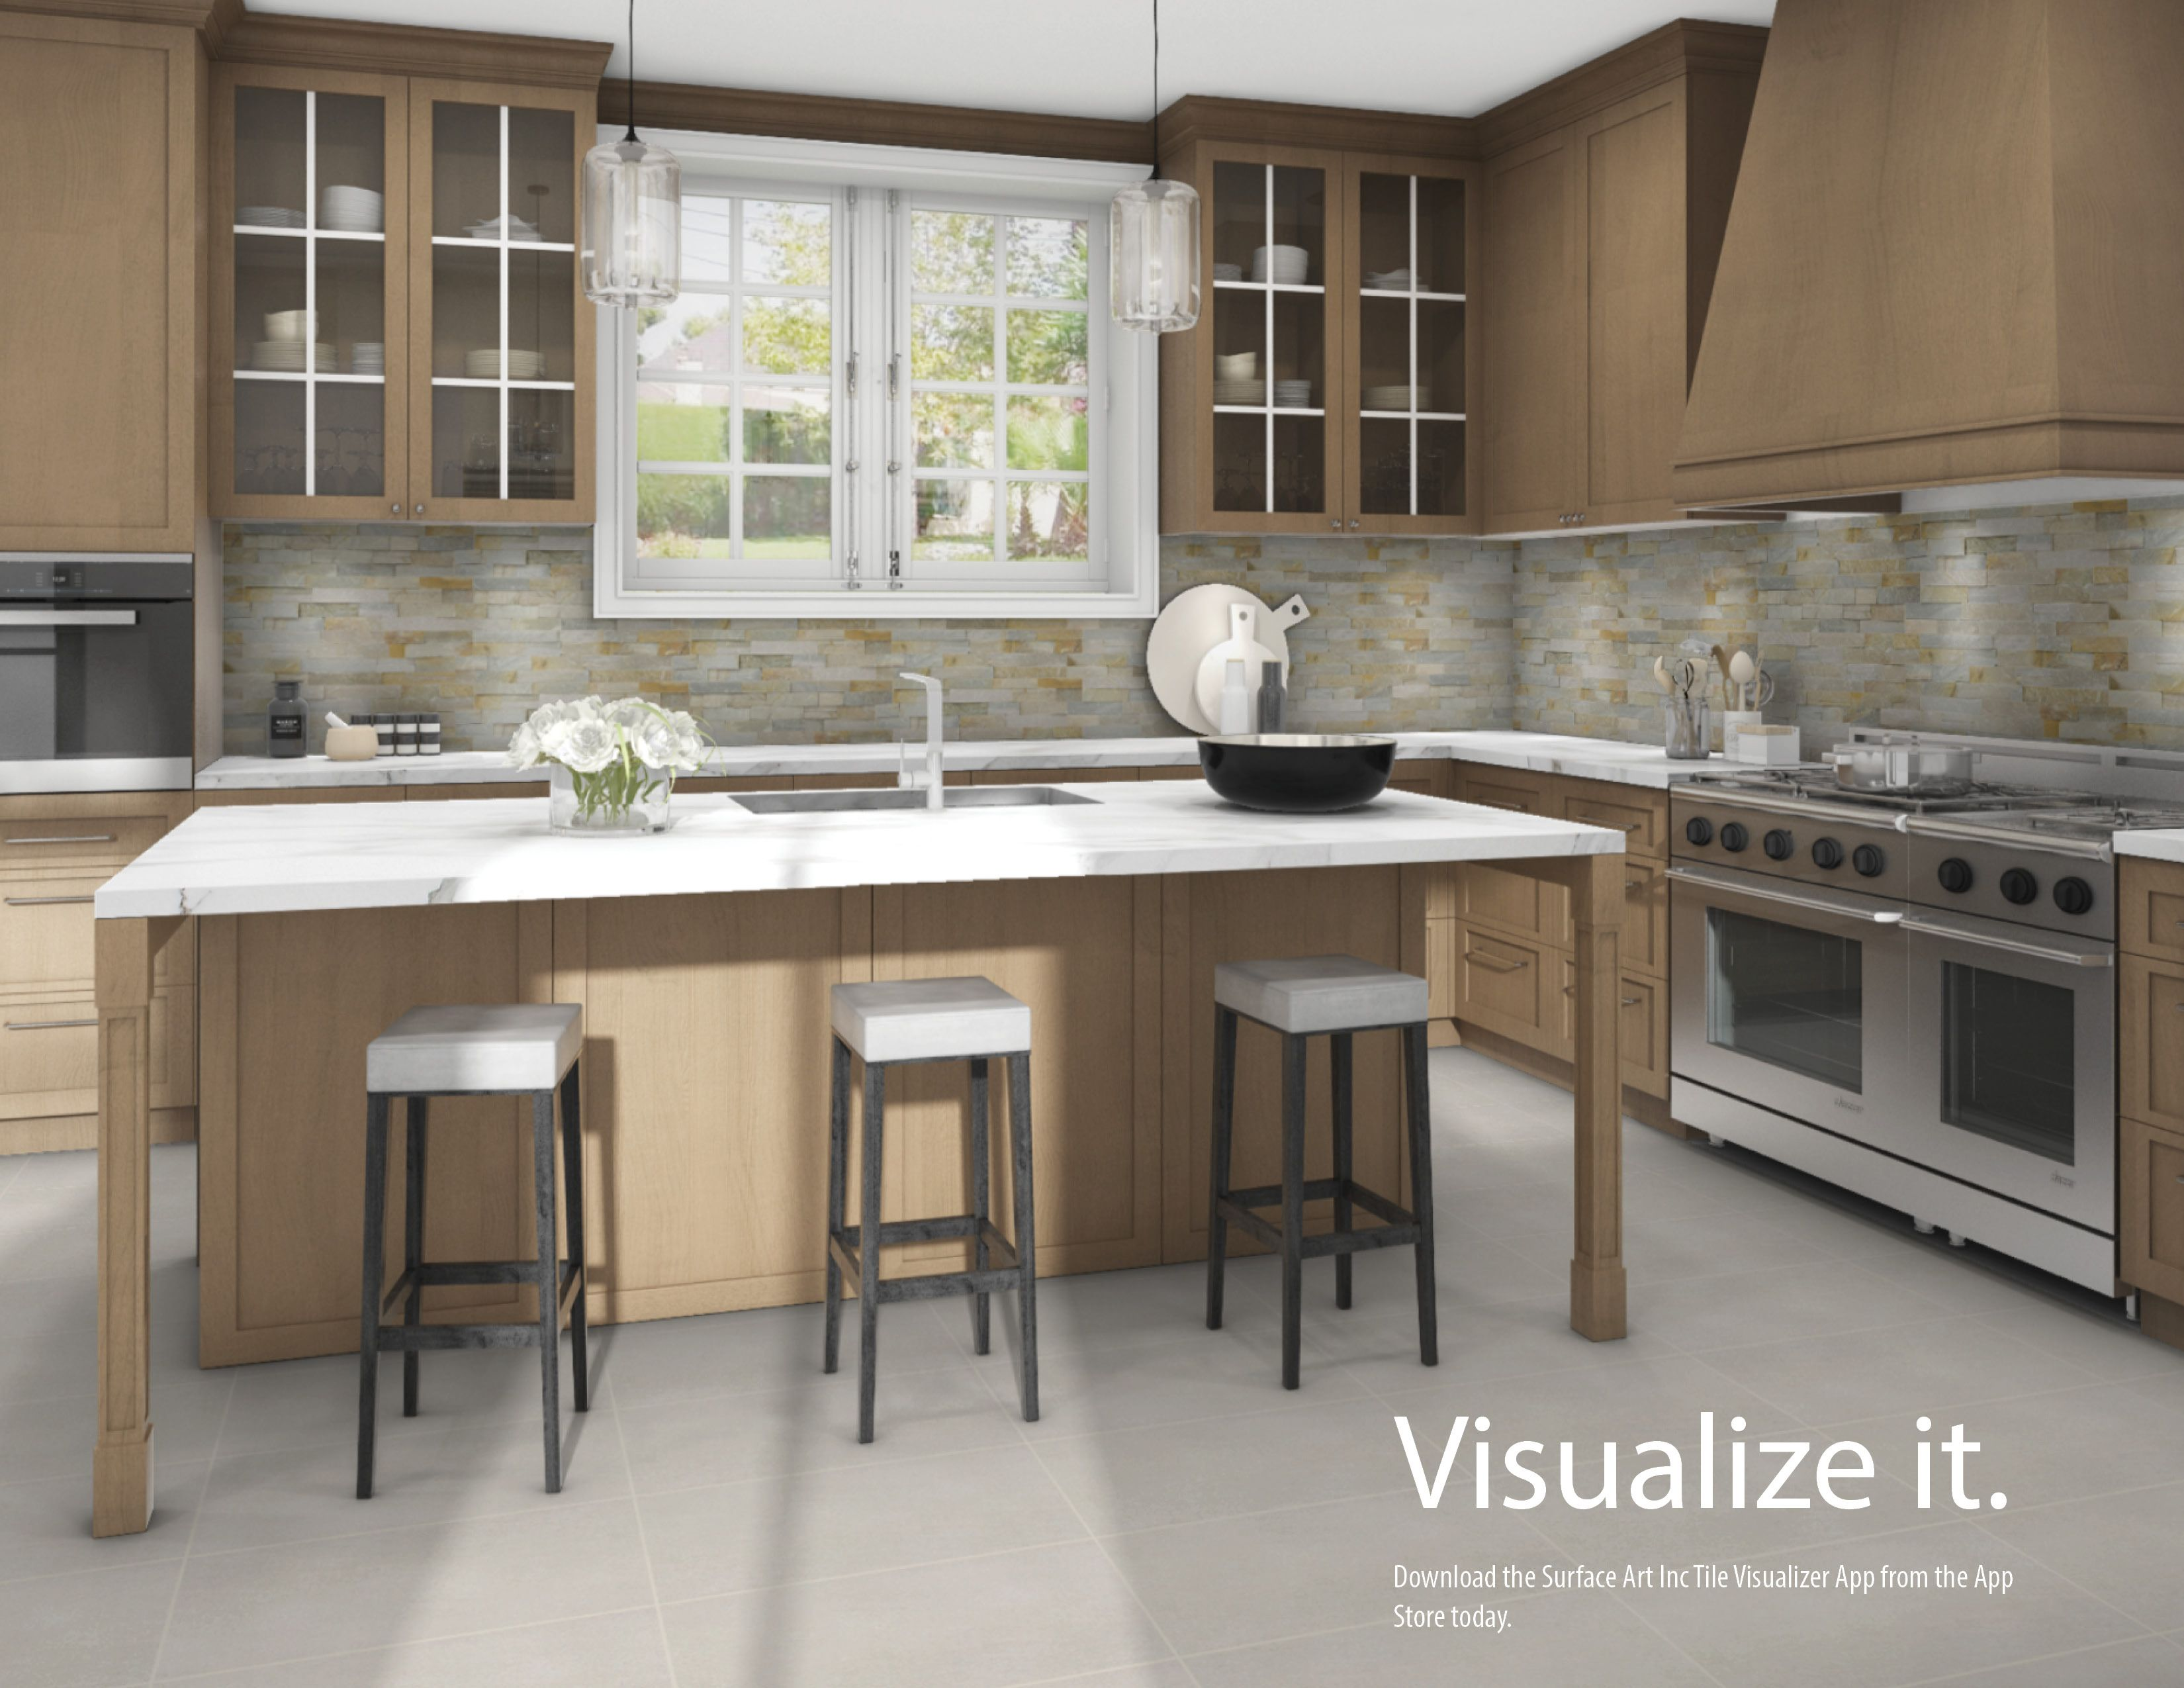 Curious To See How Our Gorgeous Ledger Stone In Beachwalk Quartz Would Look As A Backsplash Our Tile Visualiz Interior Design Styles Surface Art Dream Kitchen